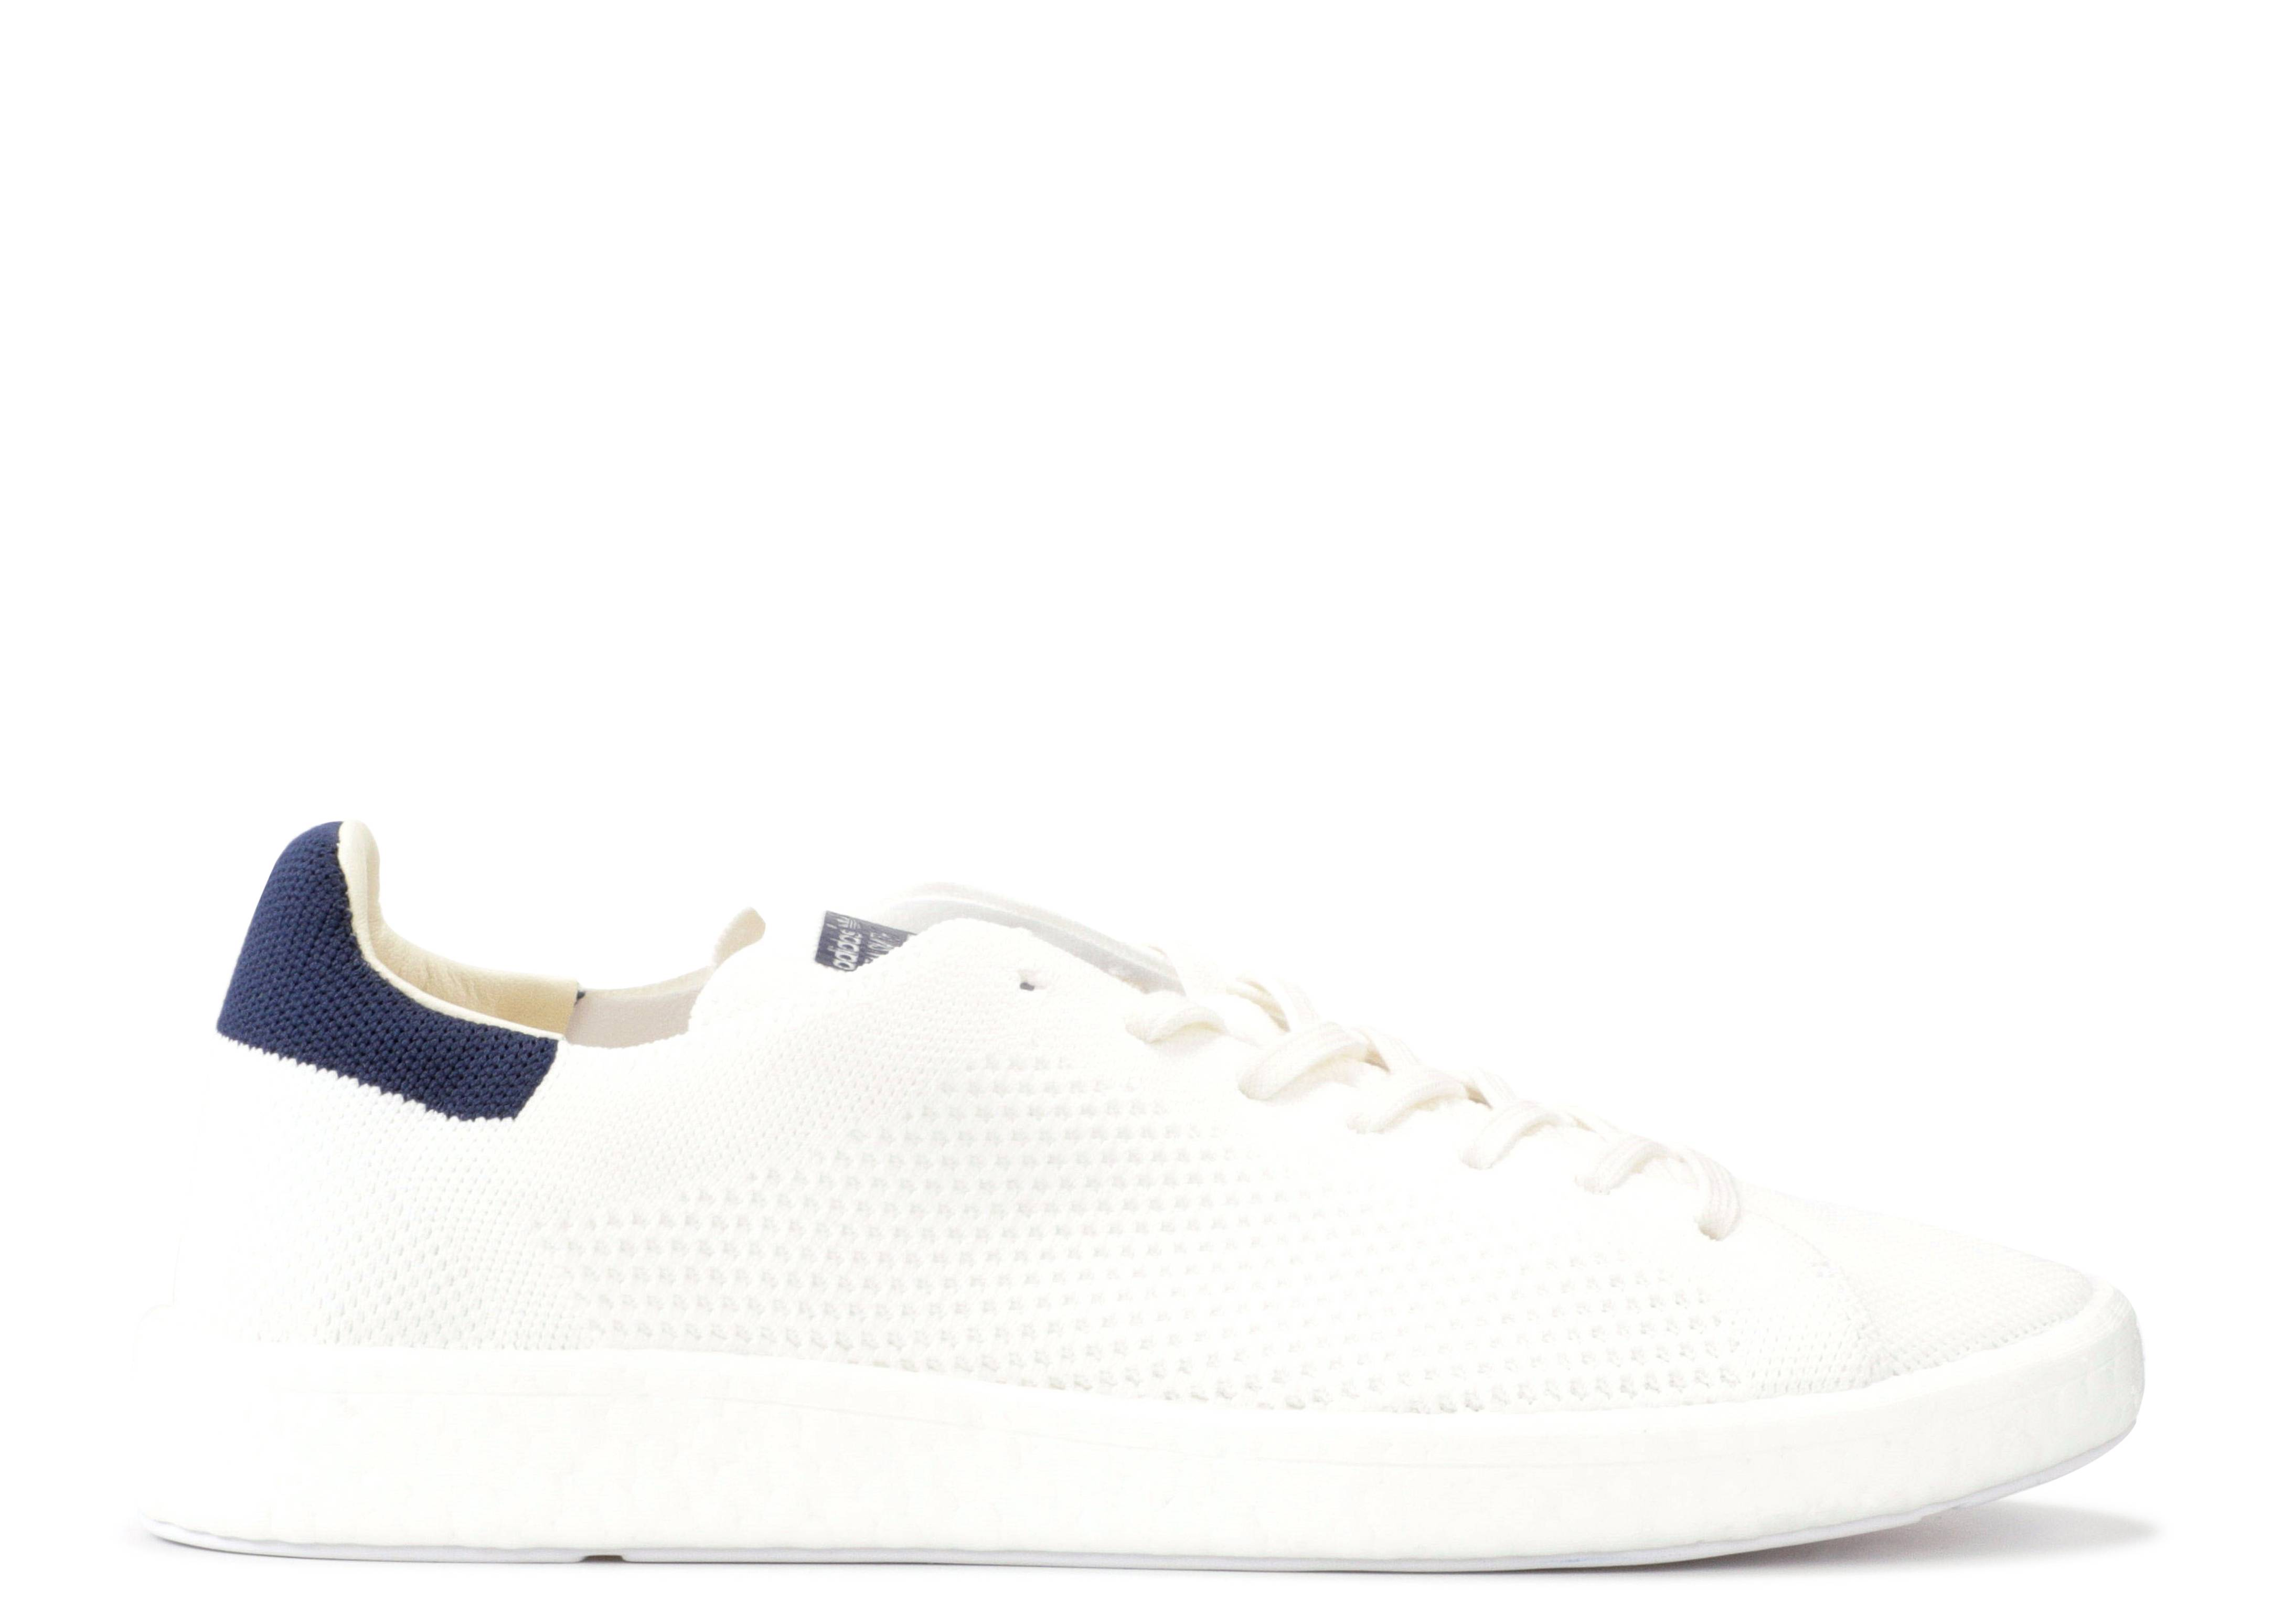 The adidas Stan Smith Boost Primeknit In White And Navy